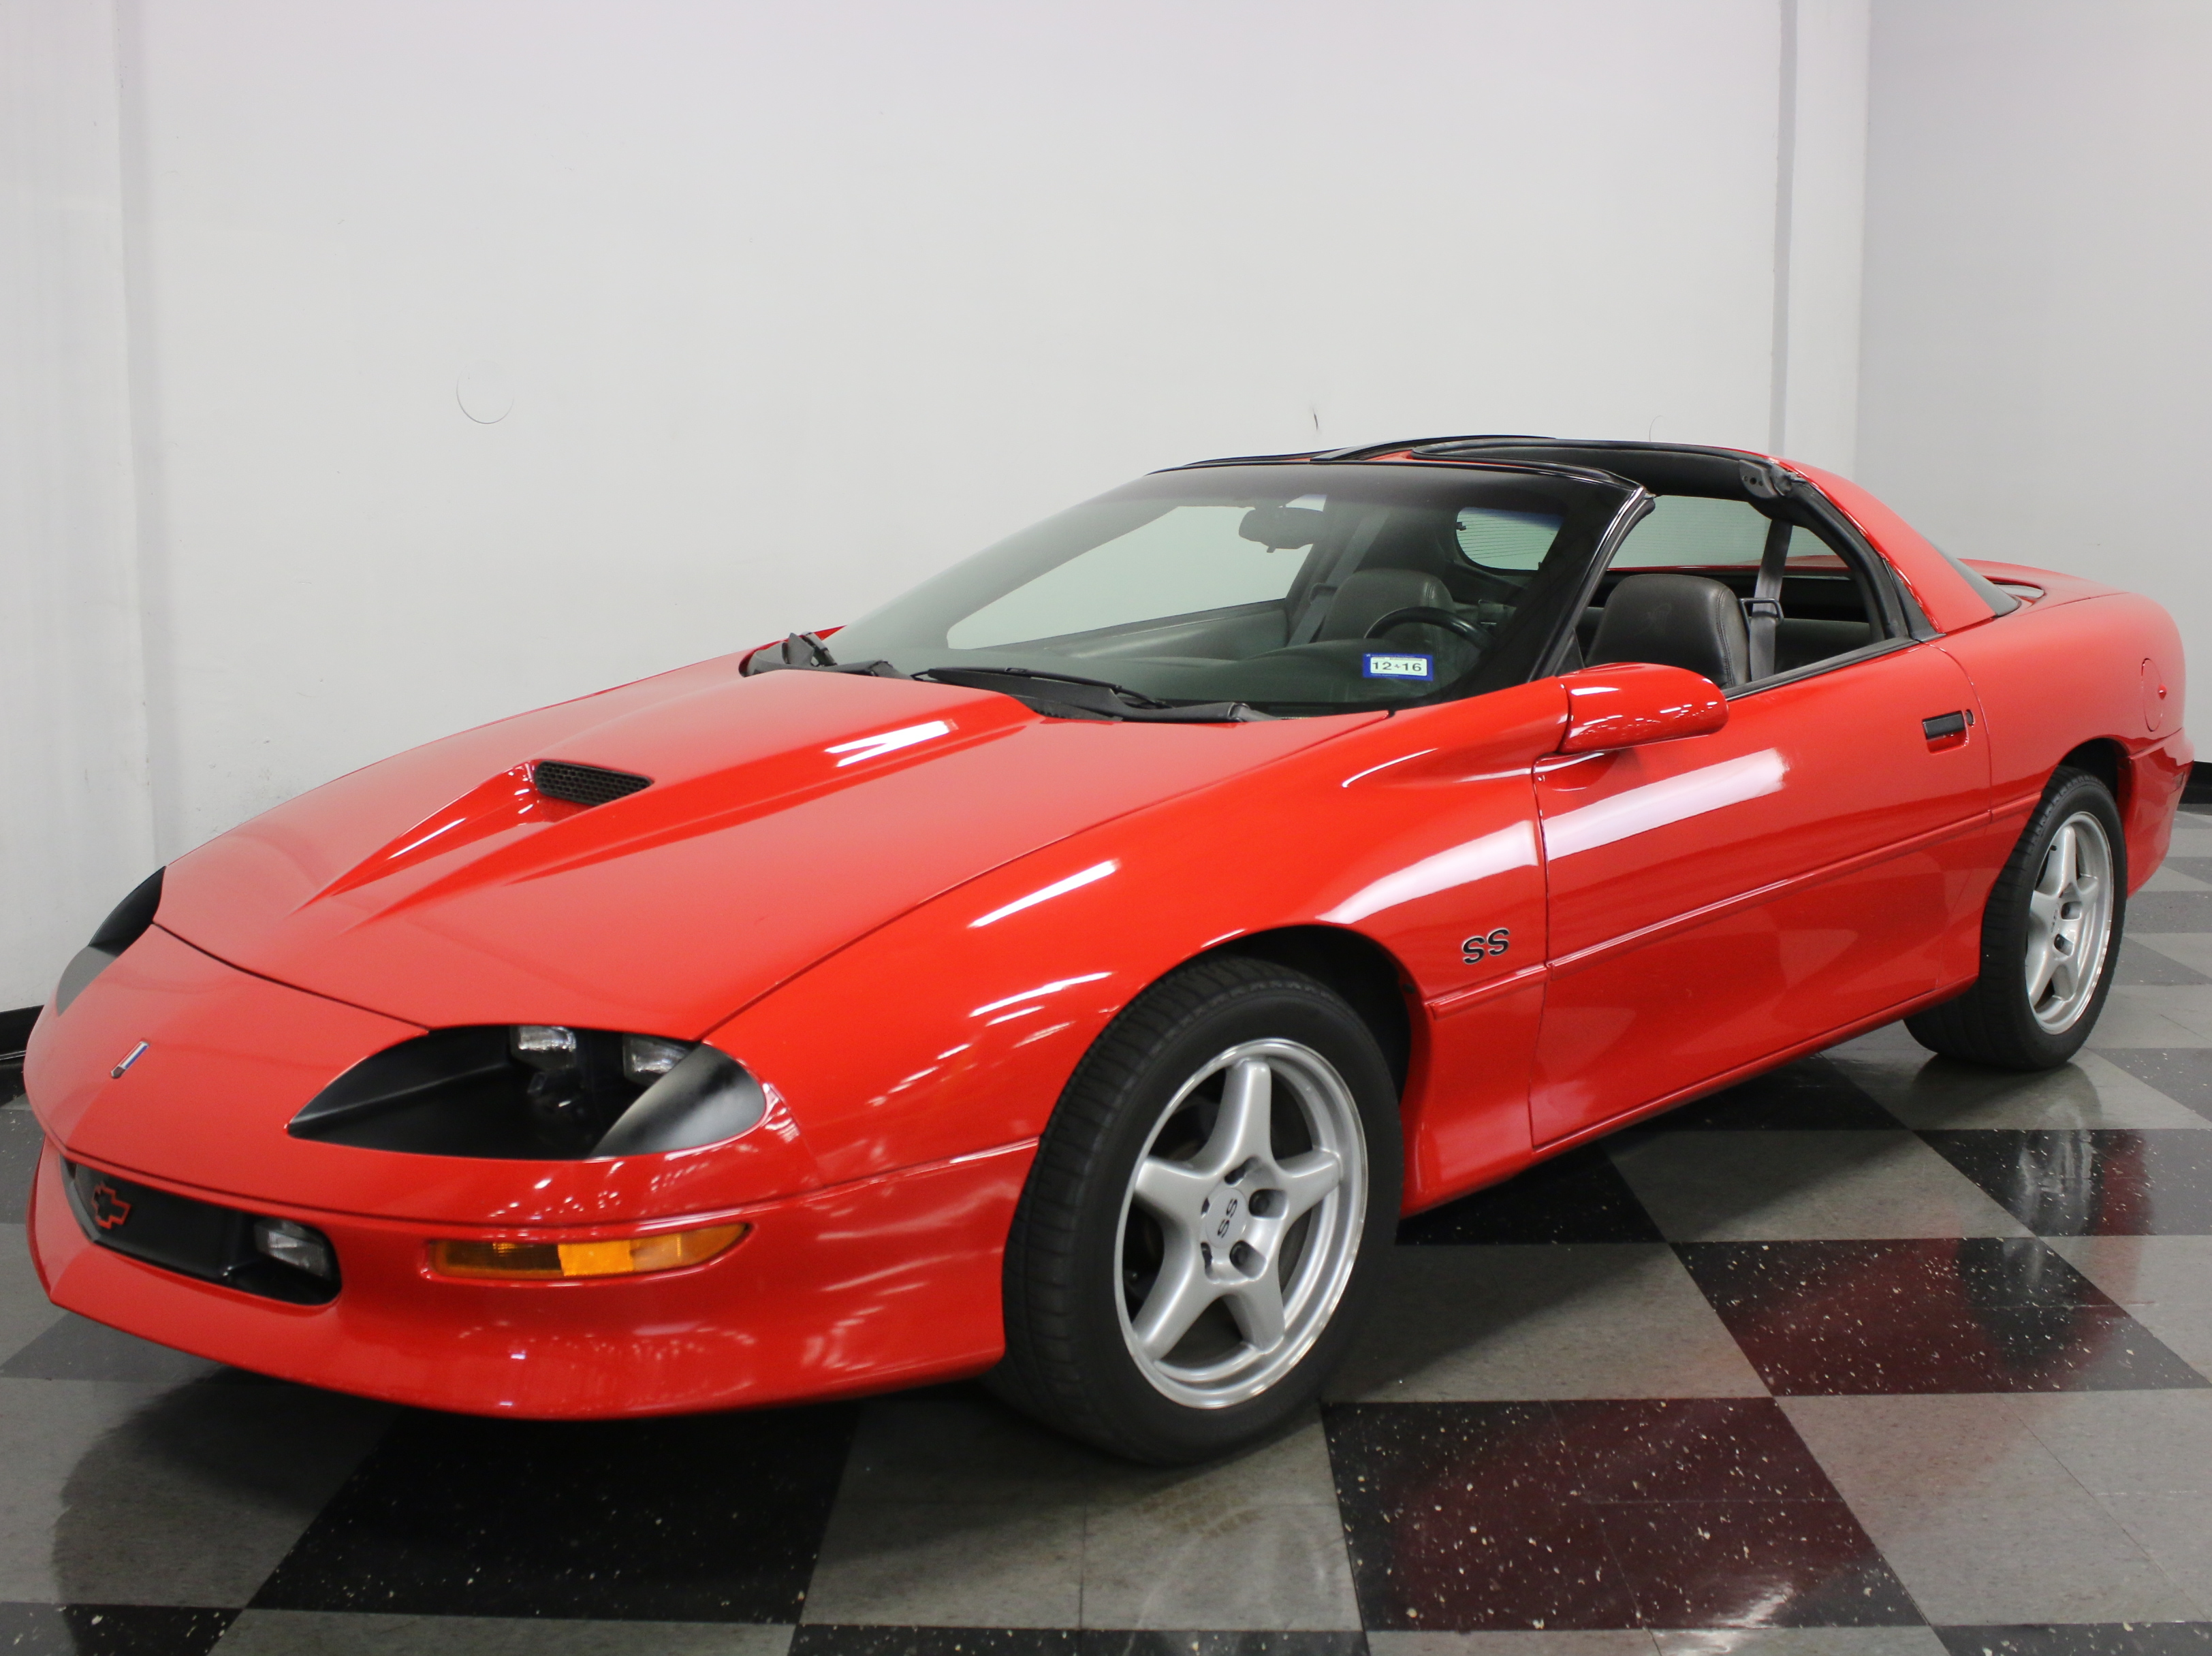 1997 Chevrolet Camaro Ss Slp Specs Autos Post